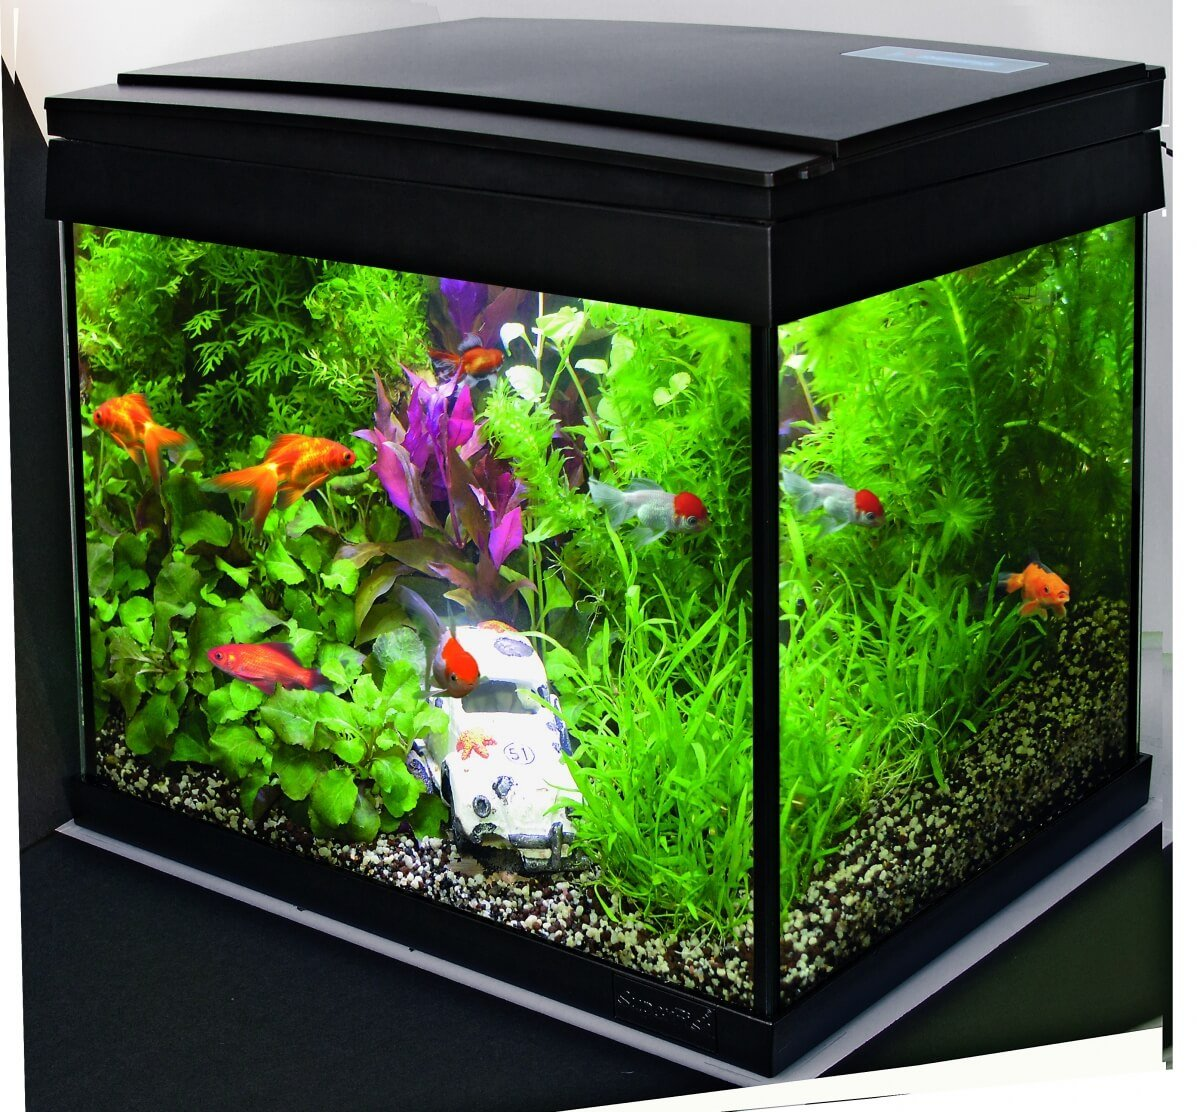 Aquarium aqua 20 led kit poisson rouge aquarium et meuble for Aquarium 1 poisson